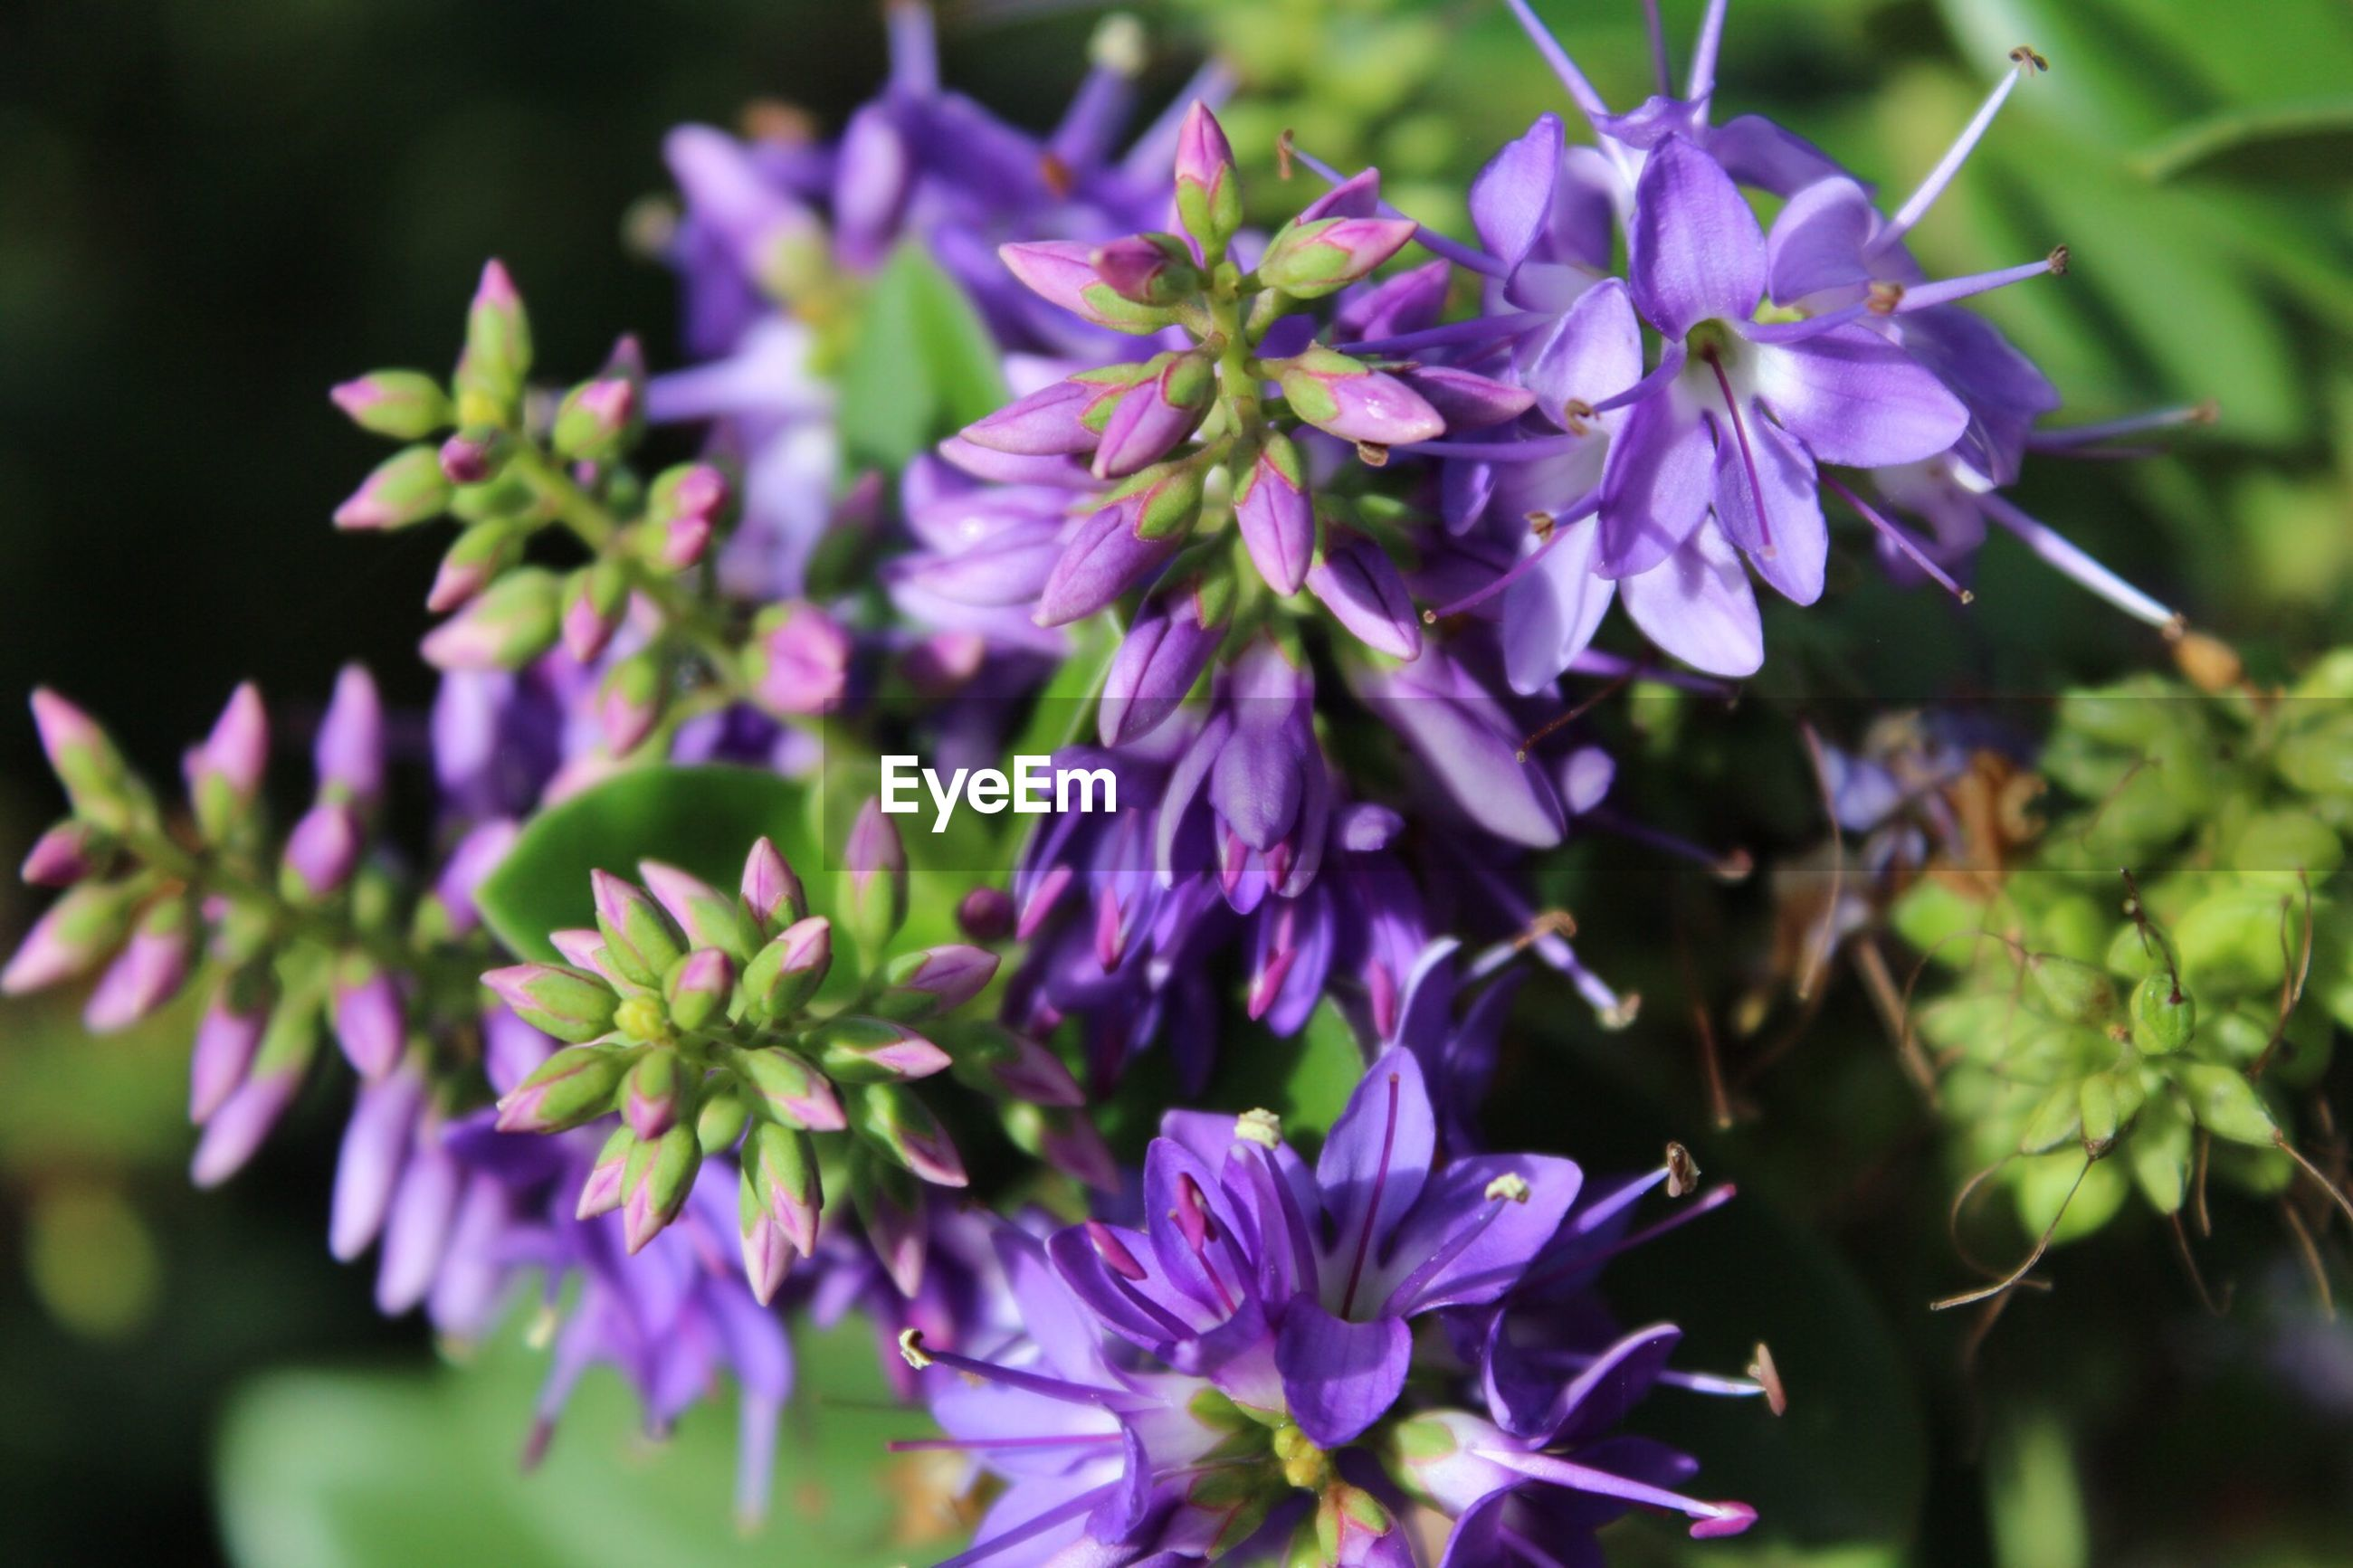 CLOSE-UP OF PURPLE FLOWERING PLANT IN BLOOM